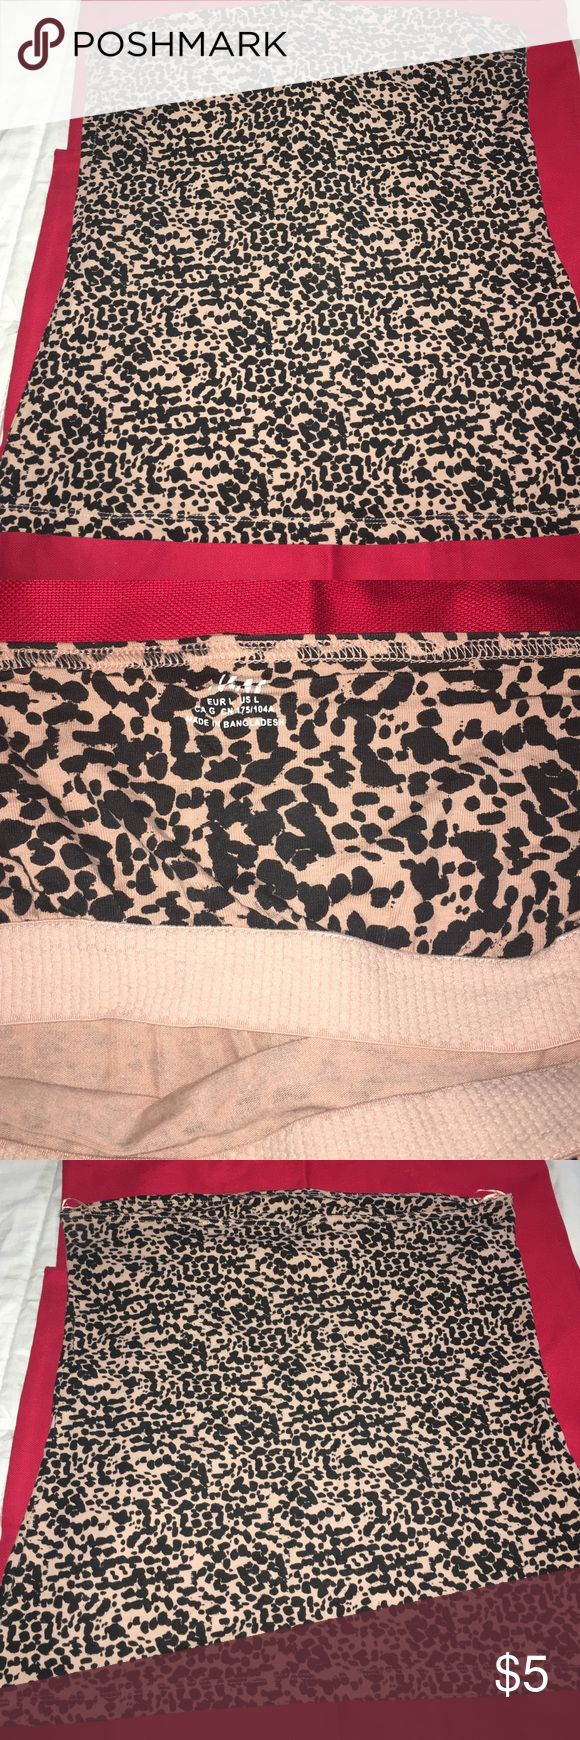 Leopard tube top H&M leopard tube top with built in bra only worn once H&M Tops